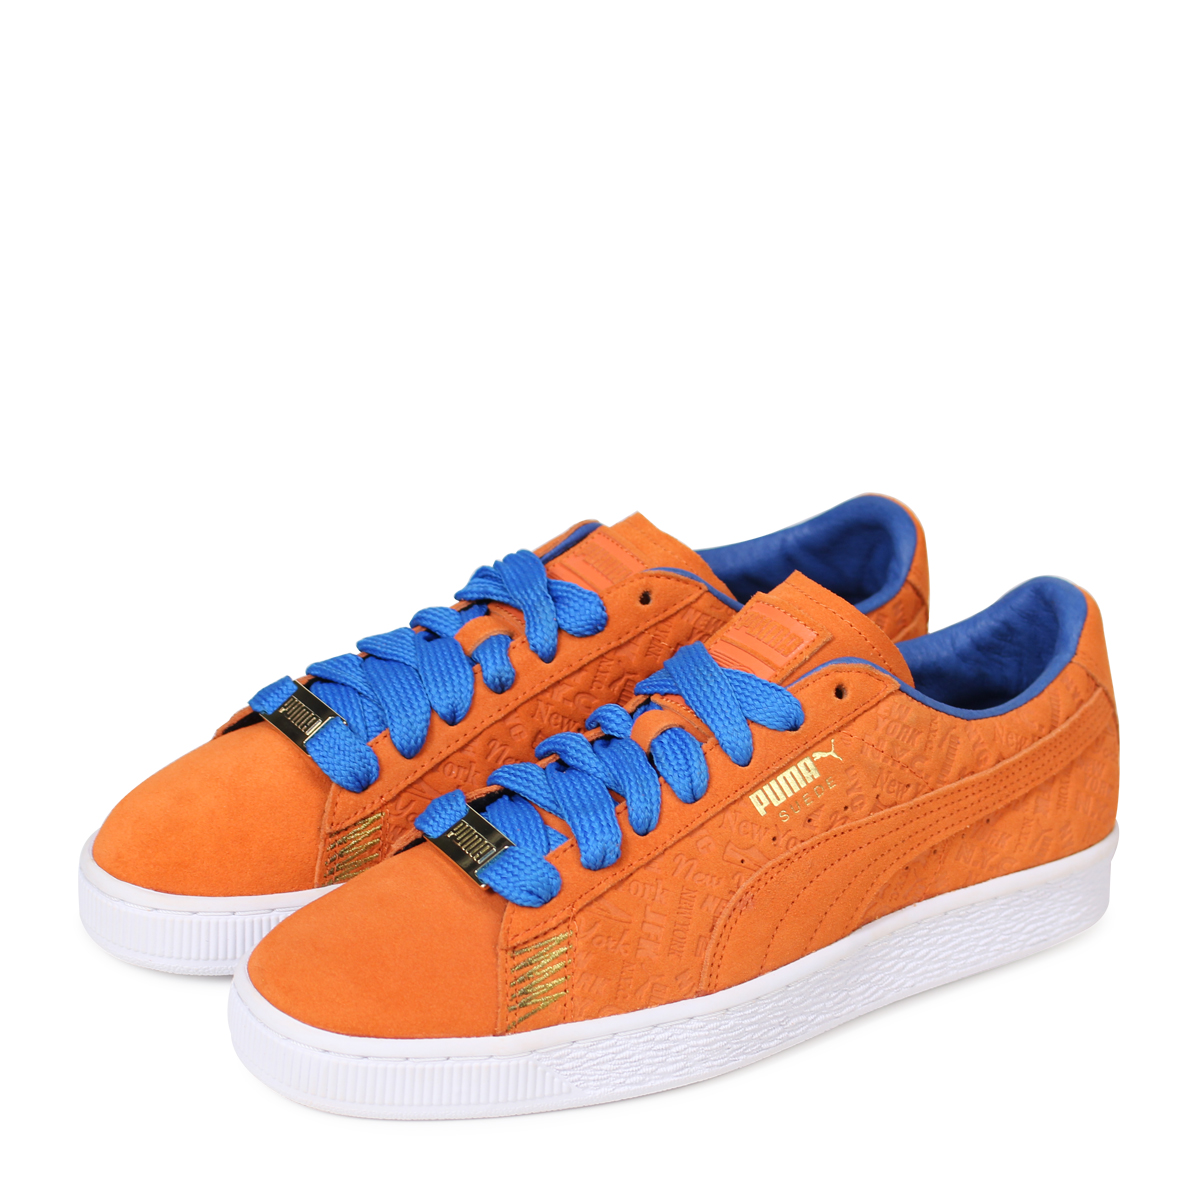 best value 1bcf8 e74e7 A PUMA SUEDE CLASSIC NYC Puma suede classical music sneakers men 366,293-01  orange [4/18 Shinnyu load] [184]